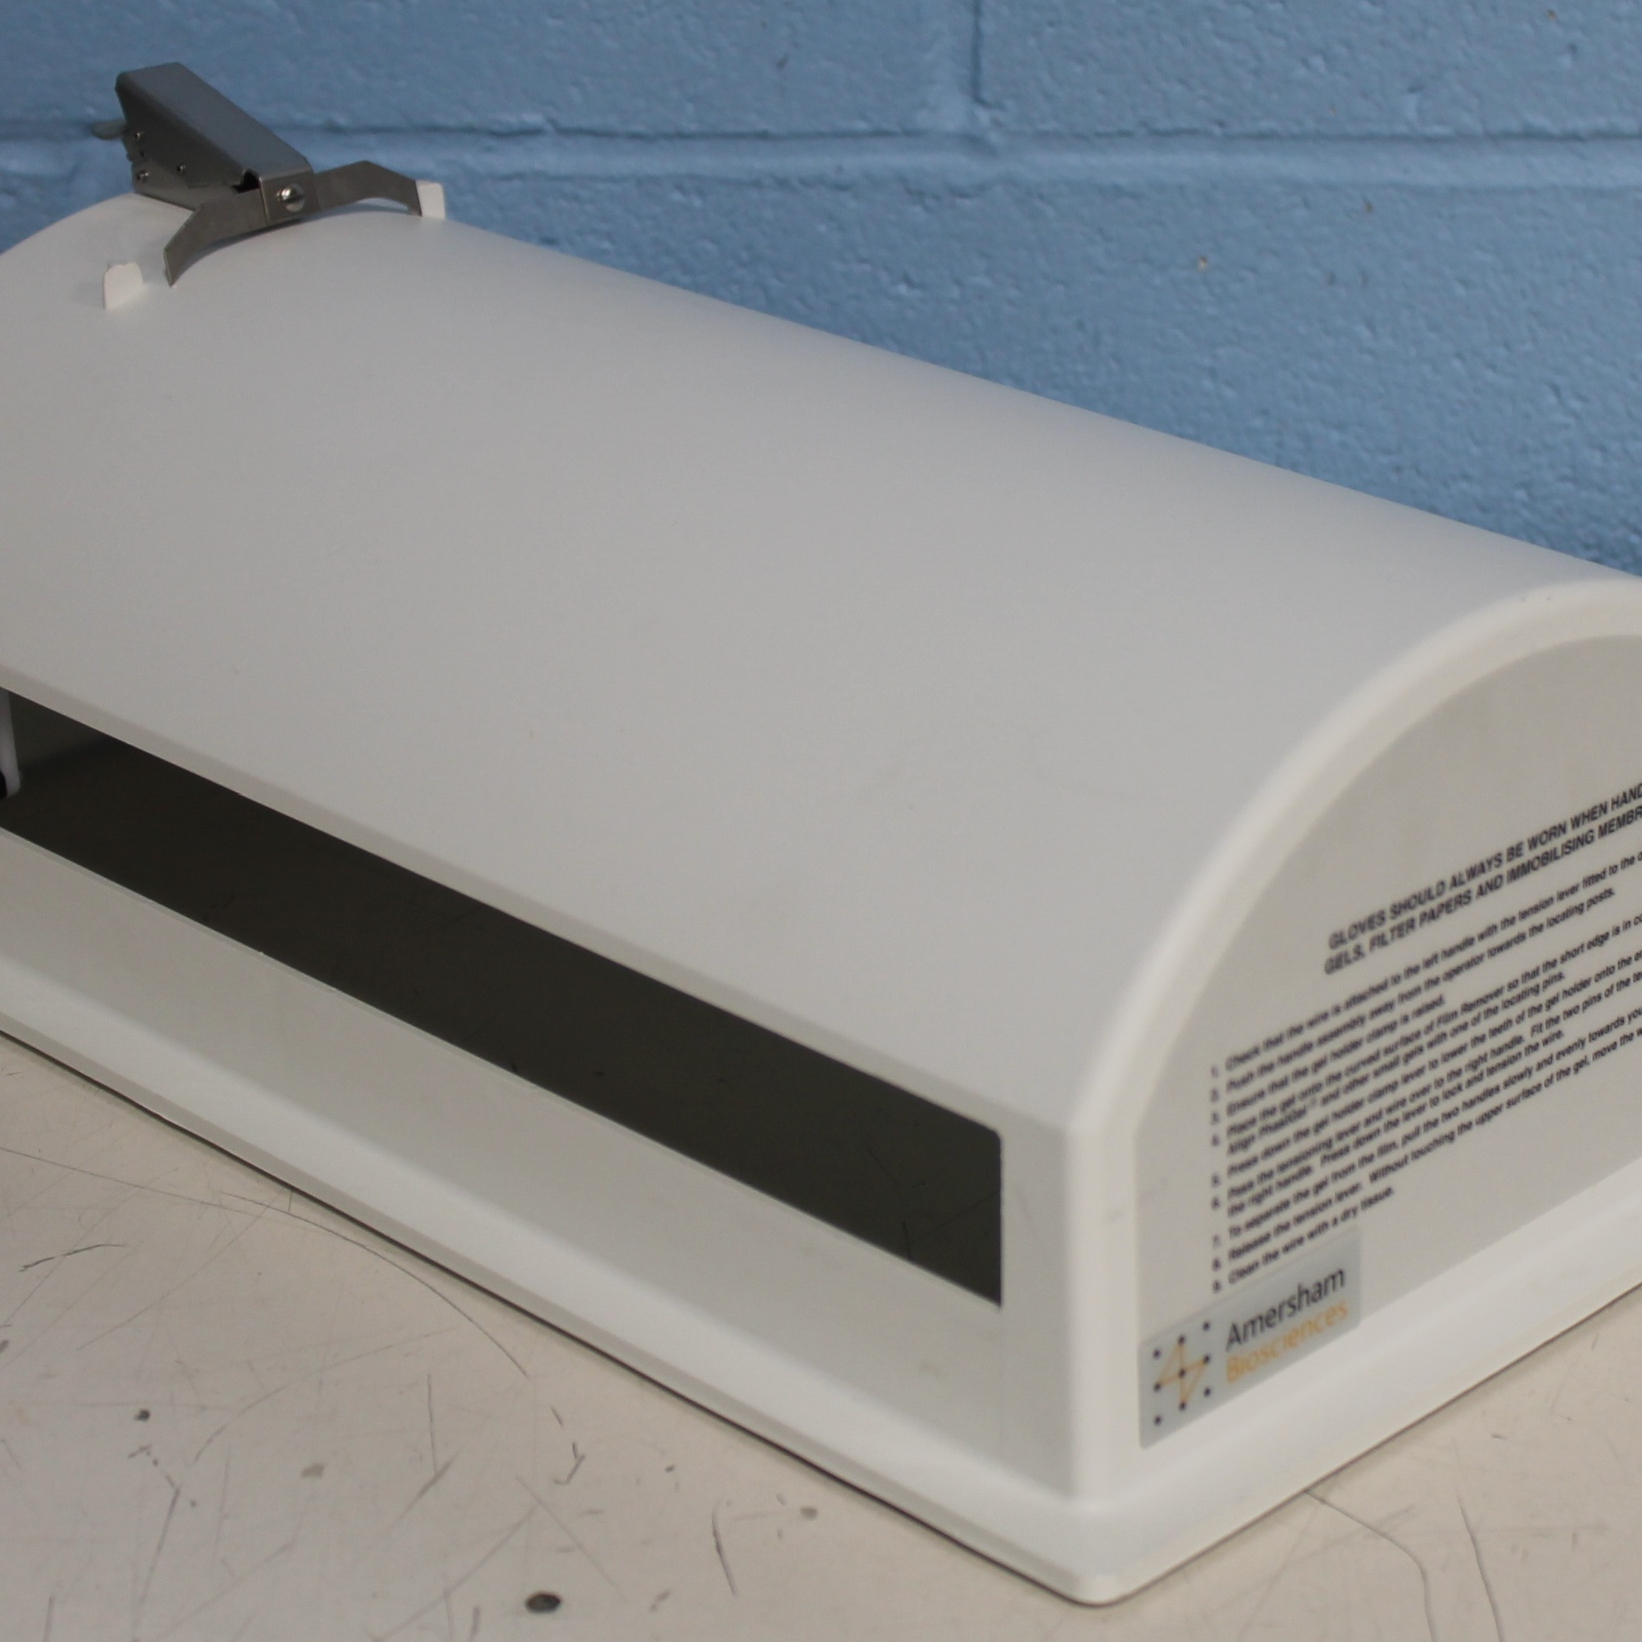 Amersham Biosciences 80-1316-21 FilmRemover Basic Unit  Image